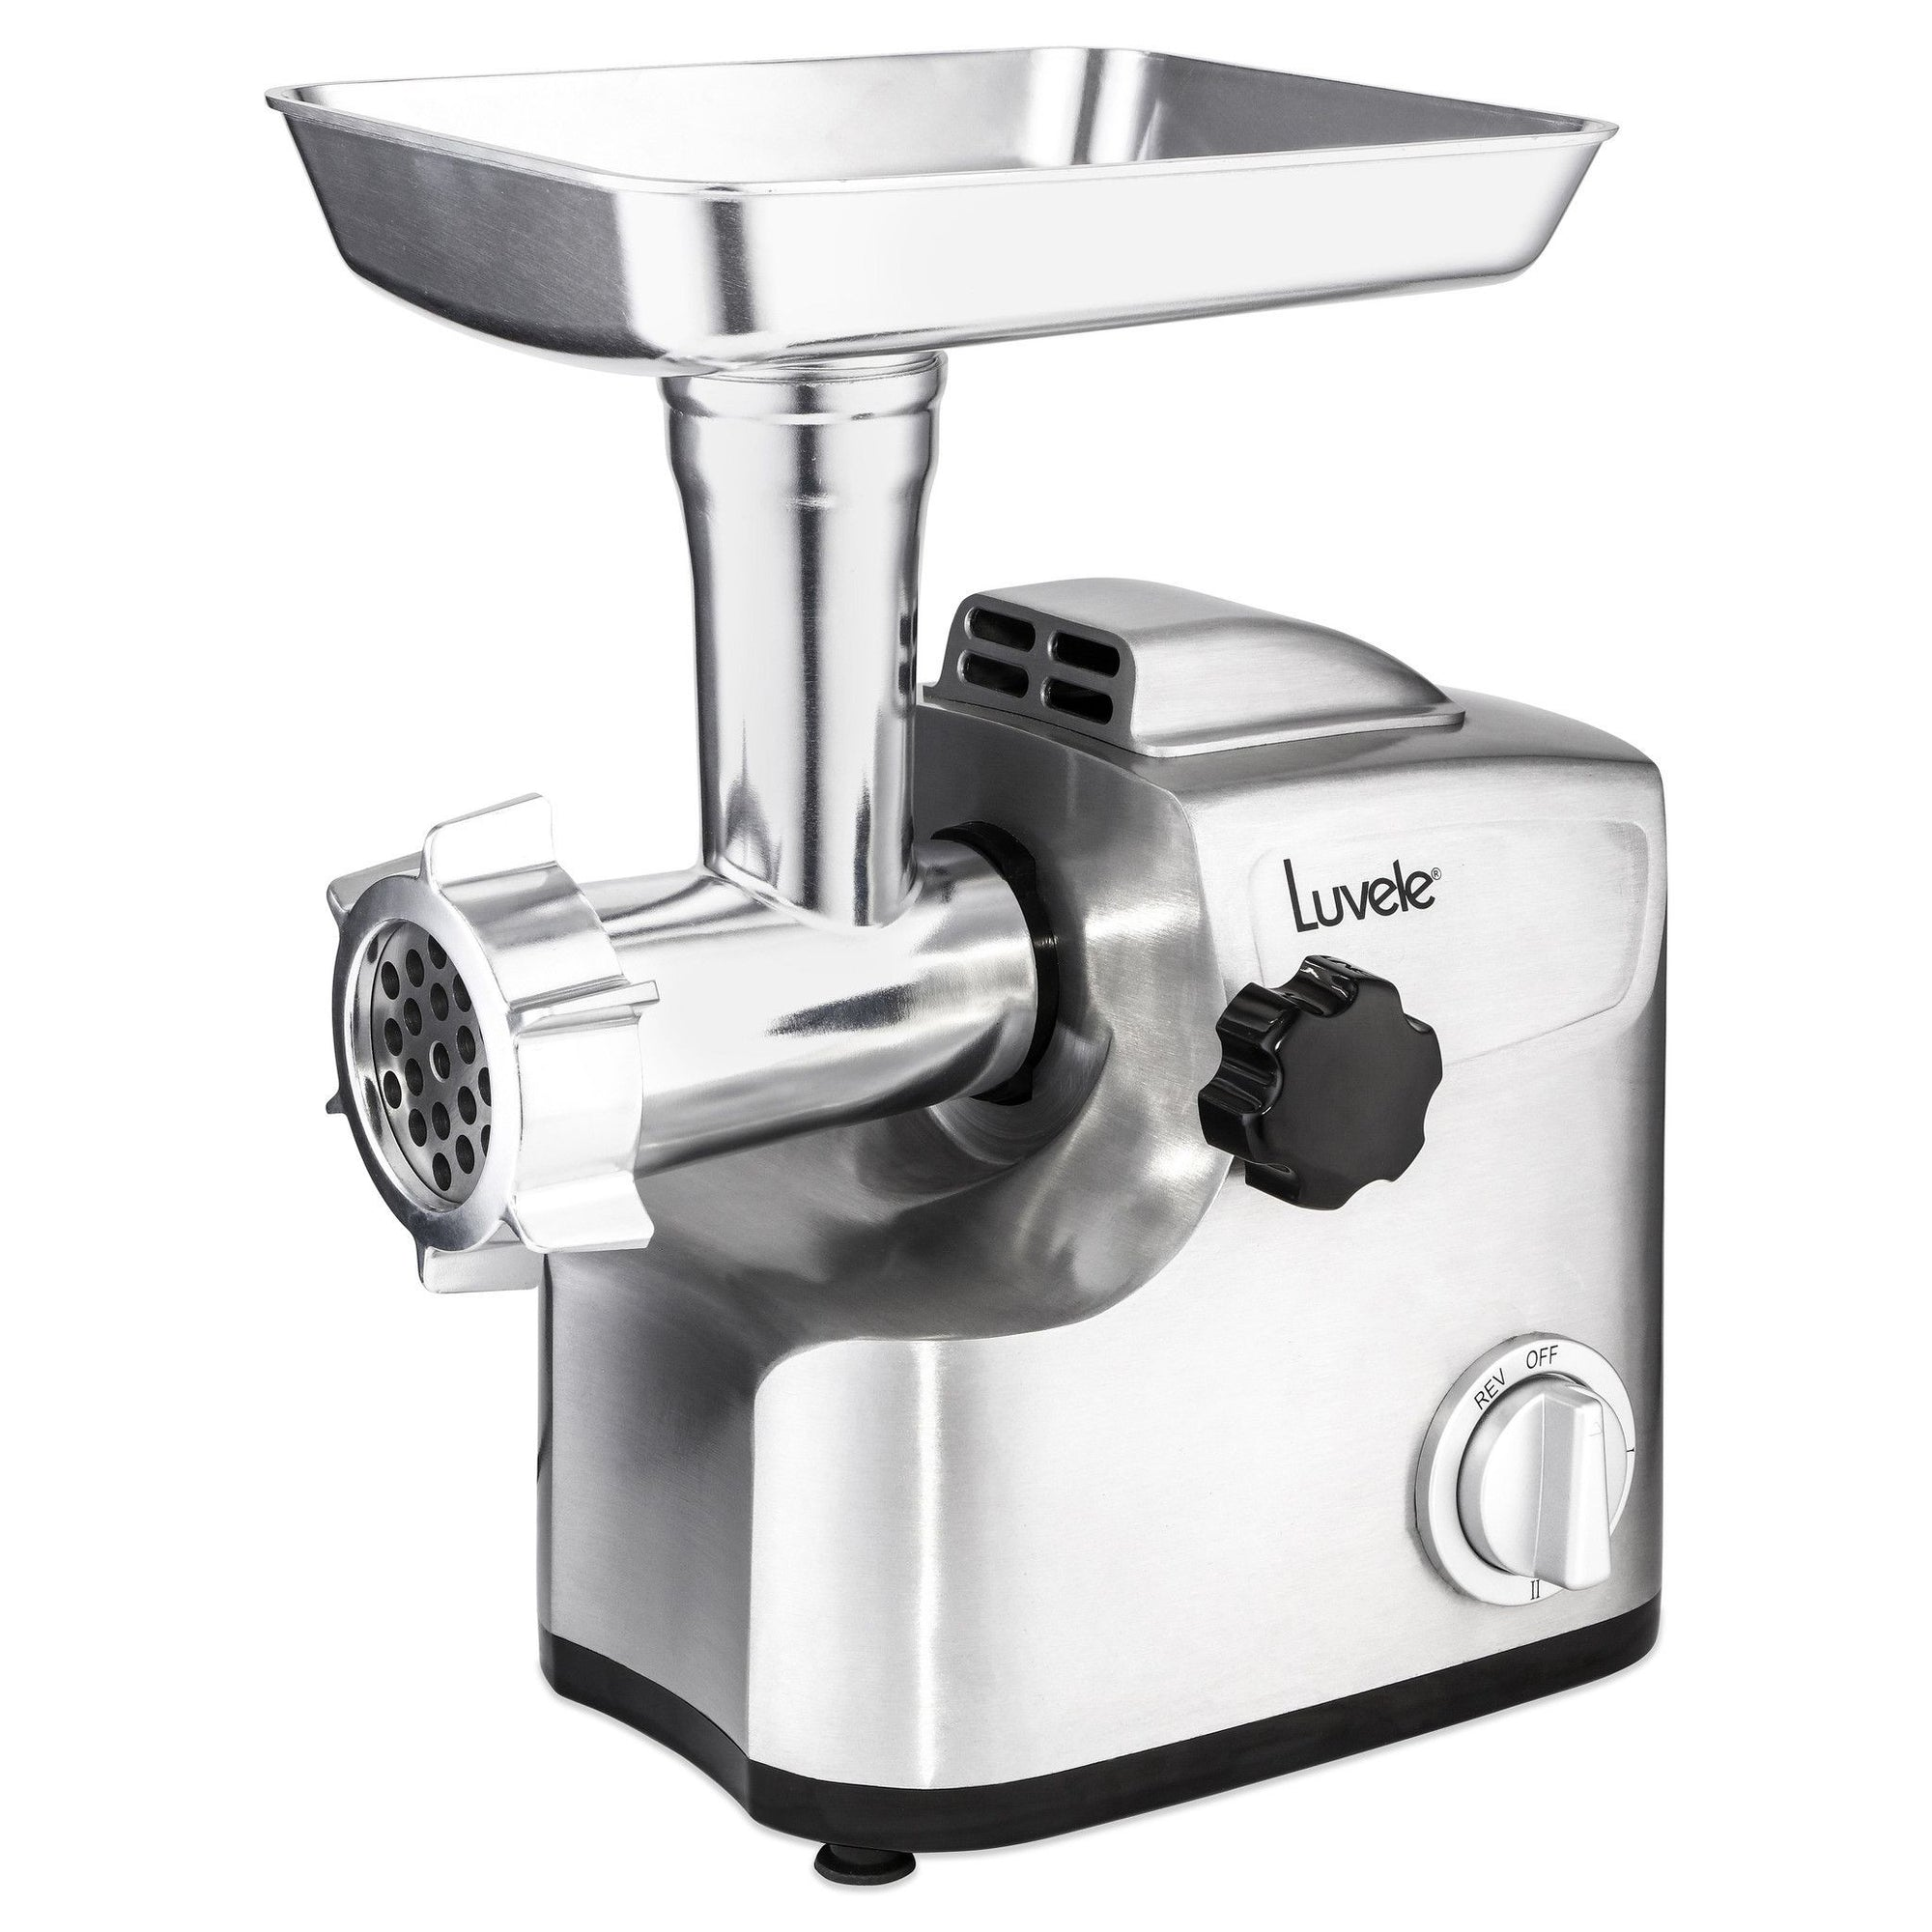 Luvele Ultimate Electric Meat Grinder | Sausage Maker | 1800w (700w rated)-Meat Grinder-Luvele UK-LUMG700UK-Luvele UK